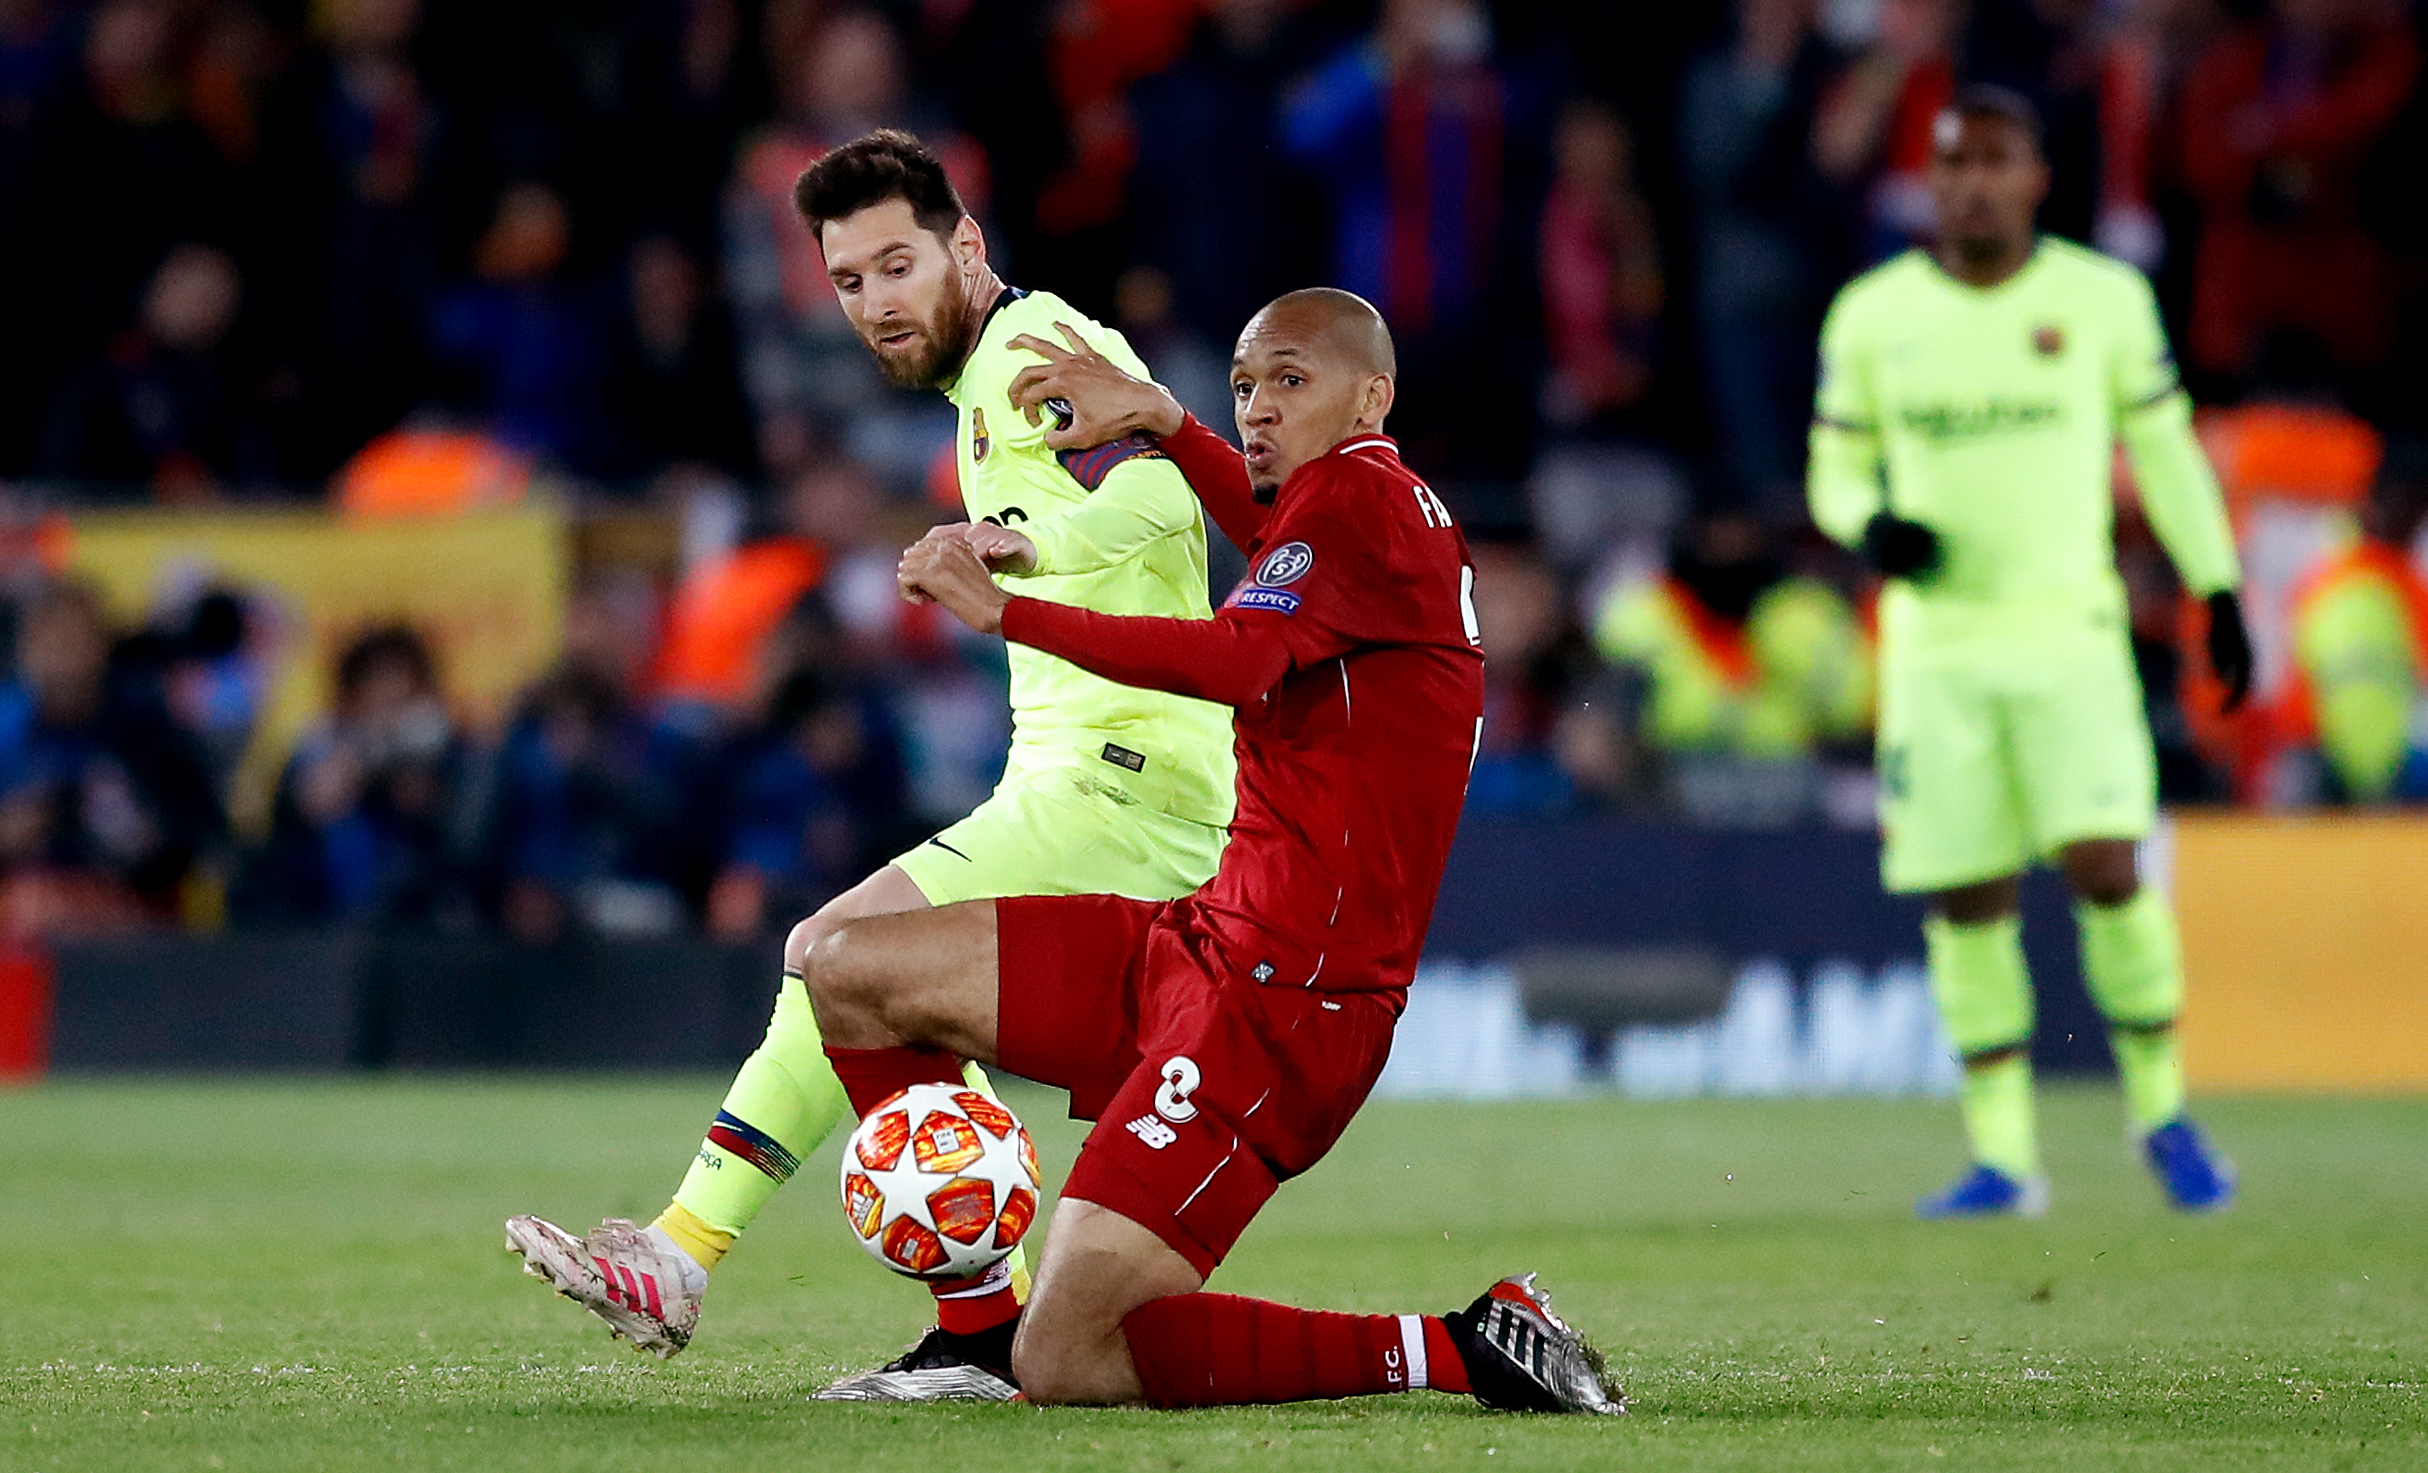 Lionel Messi labelled UNTOUCHABLE by ex-Barcelona star despite epic Liverpool comeback